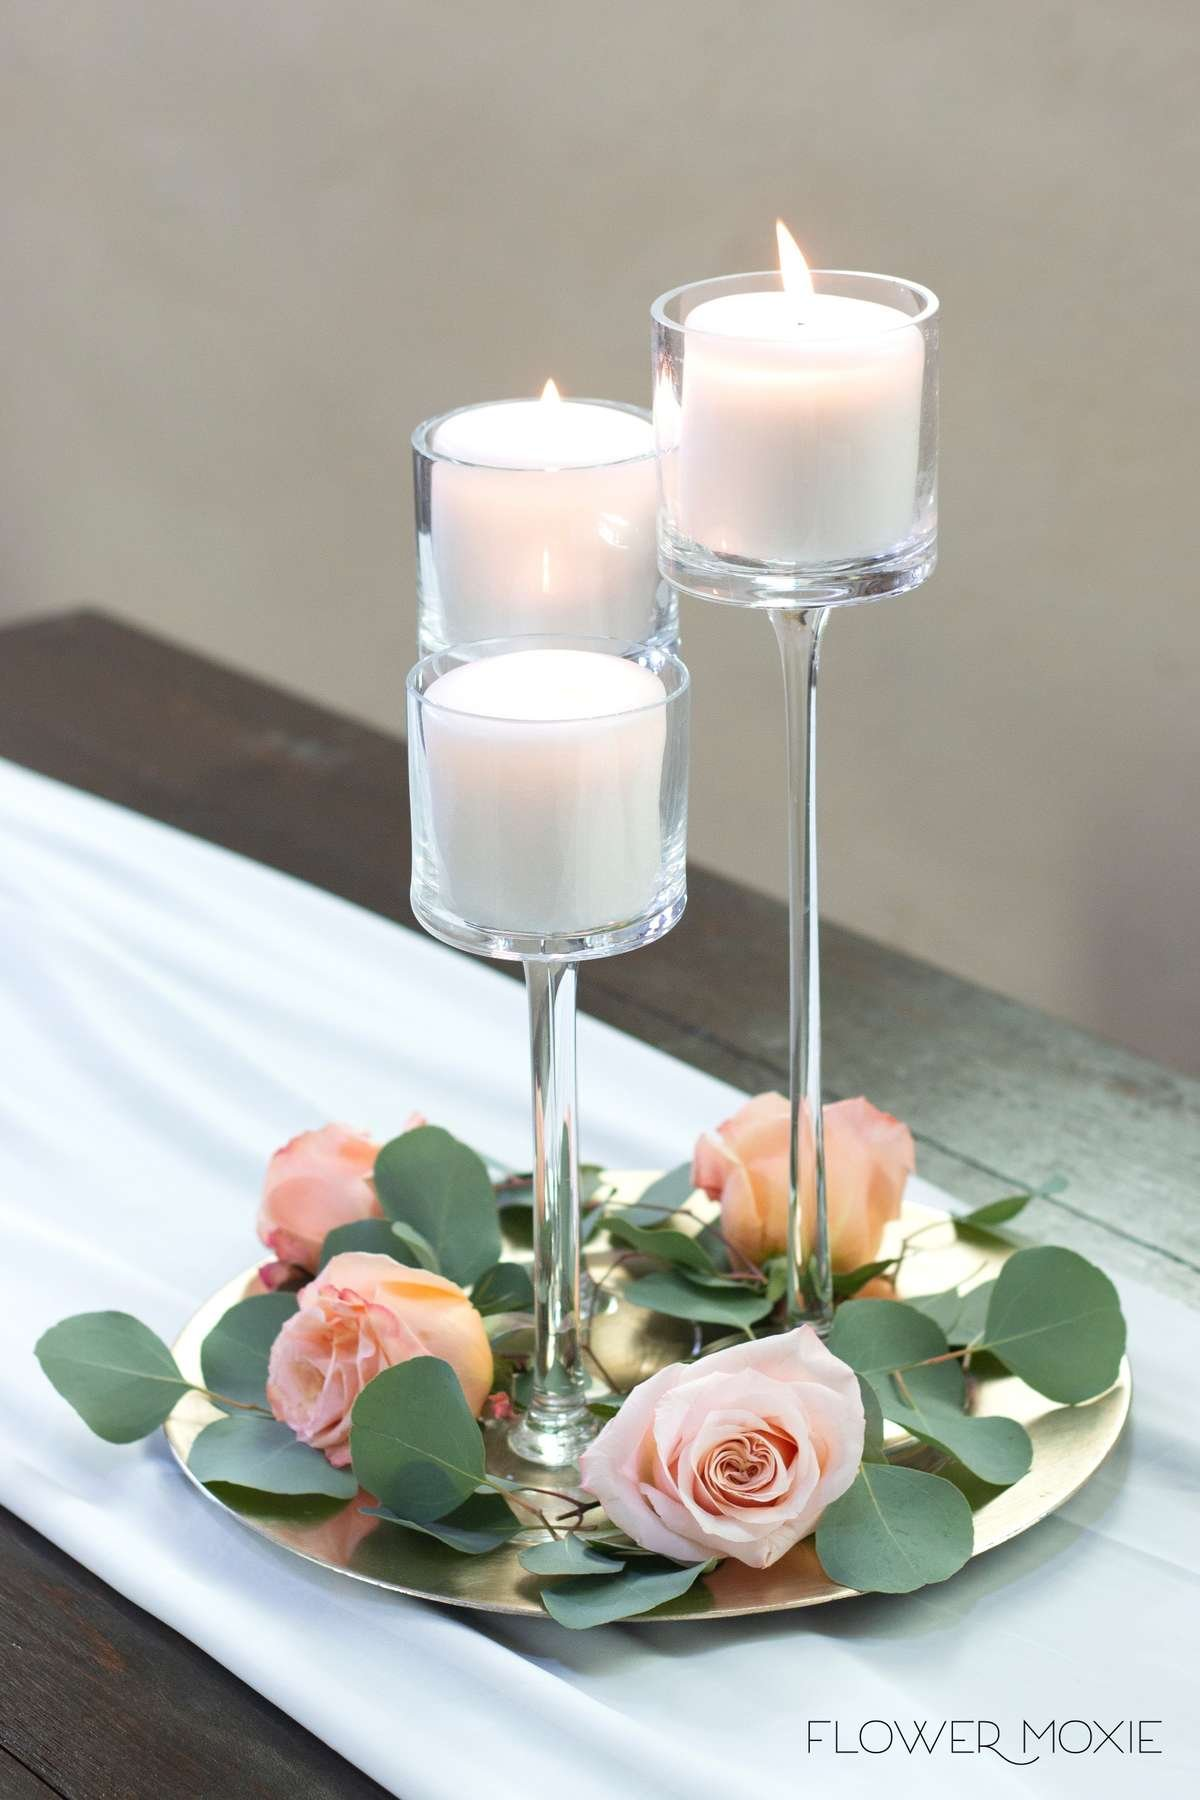 Shimmer Rose, peach roses, peachy pink rose, silver dollar eucalyptus greenery, simple centerpiece, greenery and candles, DIY wedding, DIY centerpiece, Flower Moxie